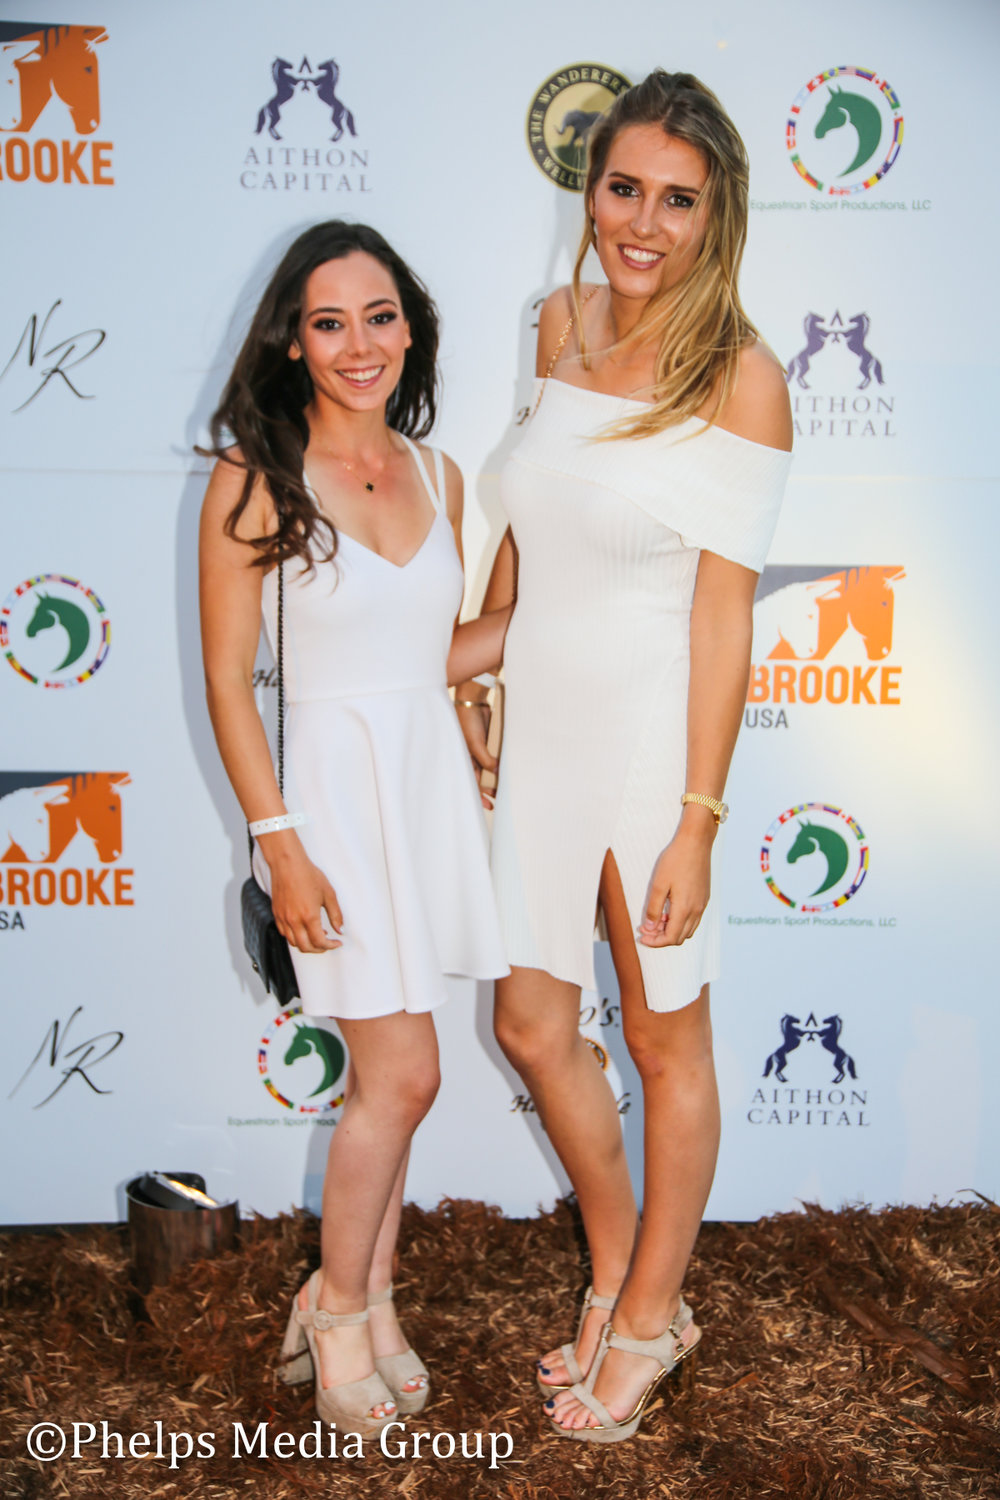 Madison Goetzman and Friend; Nic Roldan's 2nd Annual Sunset Polo & White Party, FL, by Phelps Media.jpg